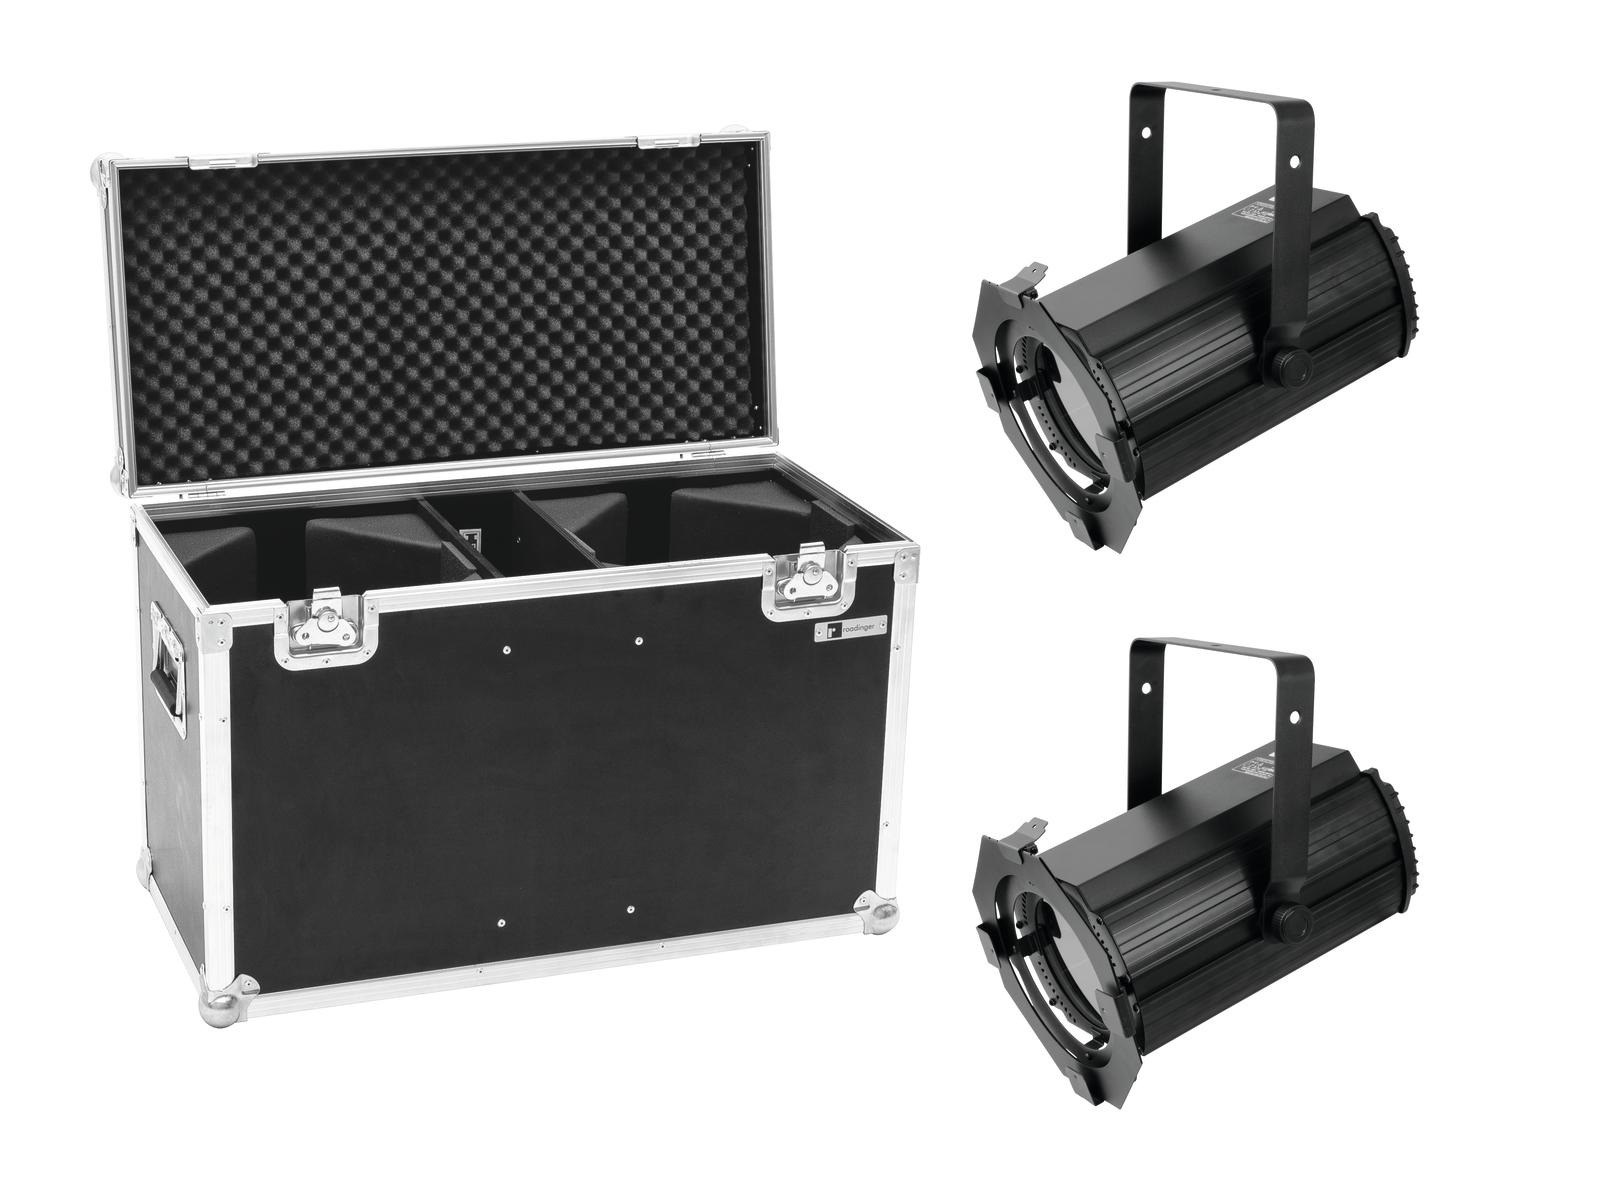 EUROLITE Set 2x LED THA-100F MK2 Theater-Spot + Case